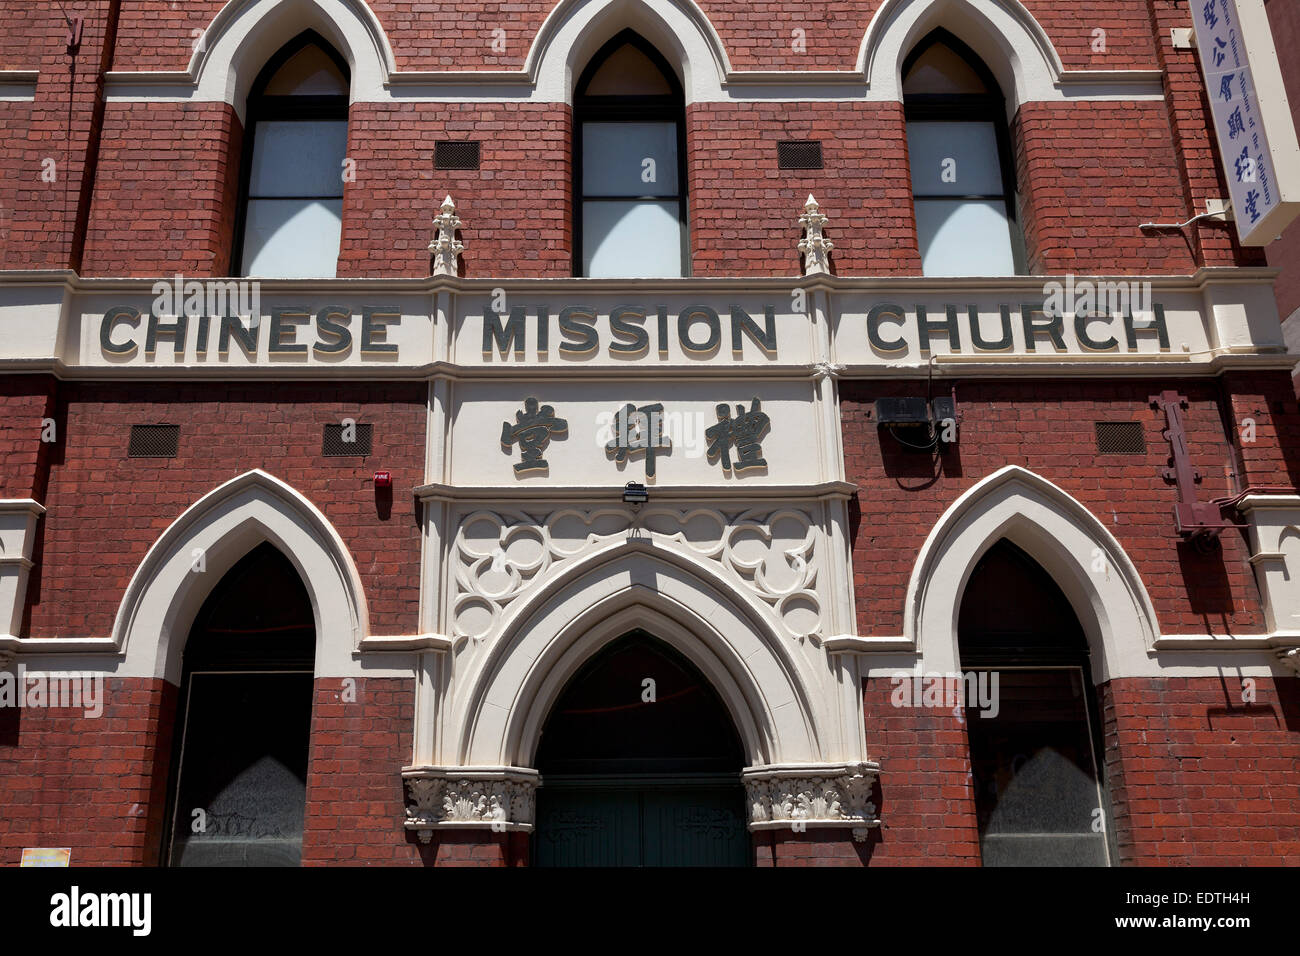 Chinese Mission Church in Chinatown in Melbourne, Australia - Stock Image